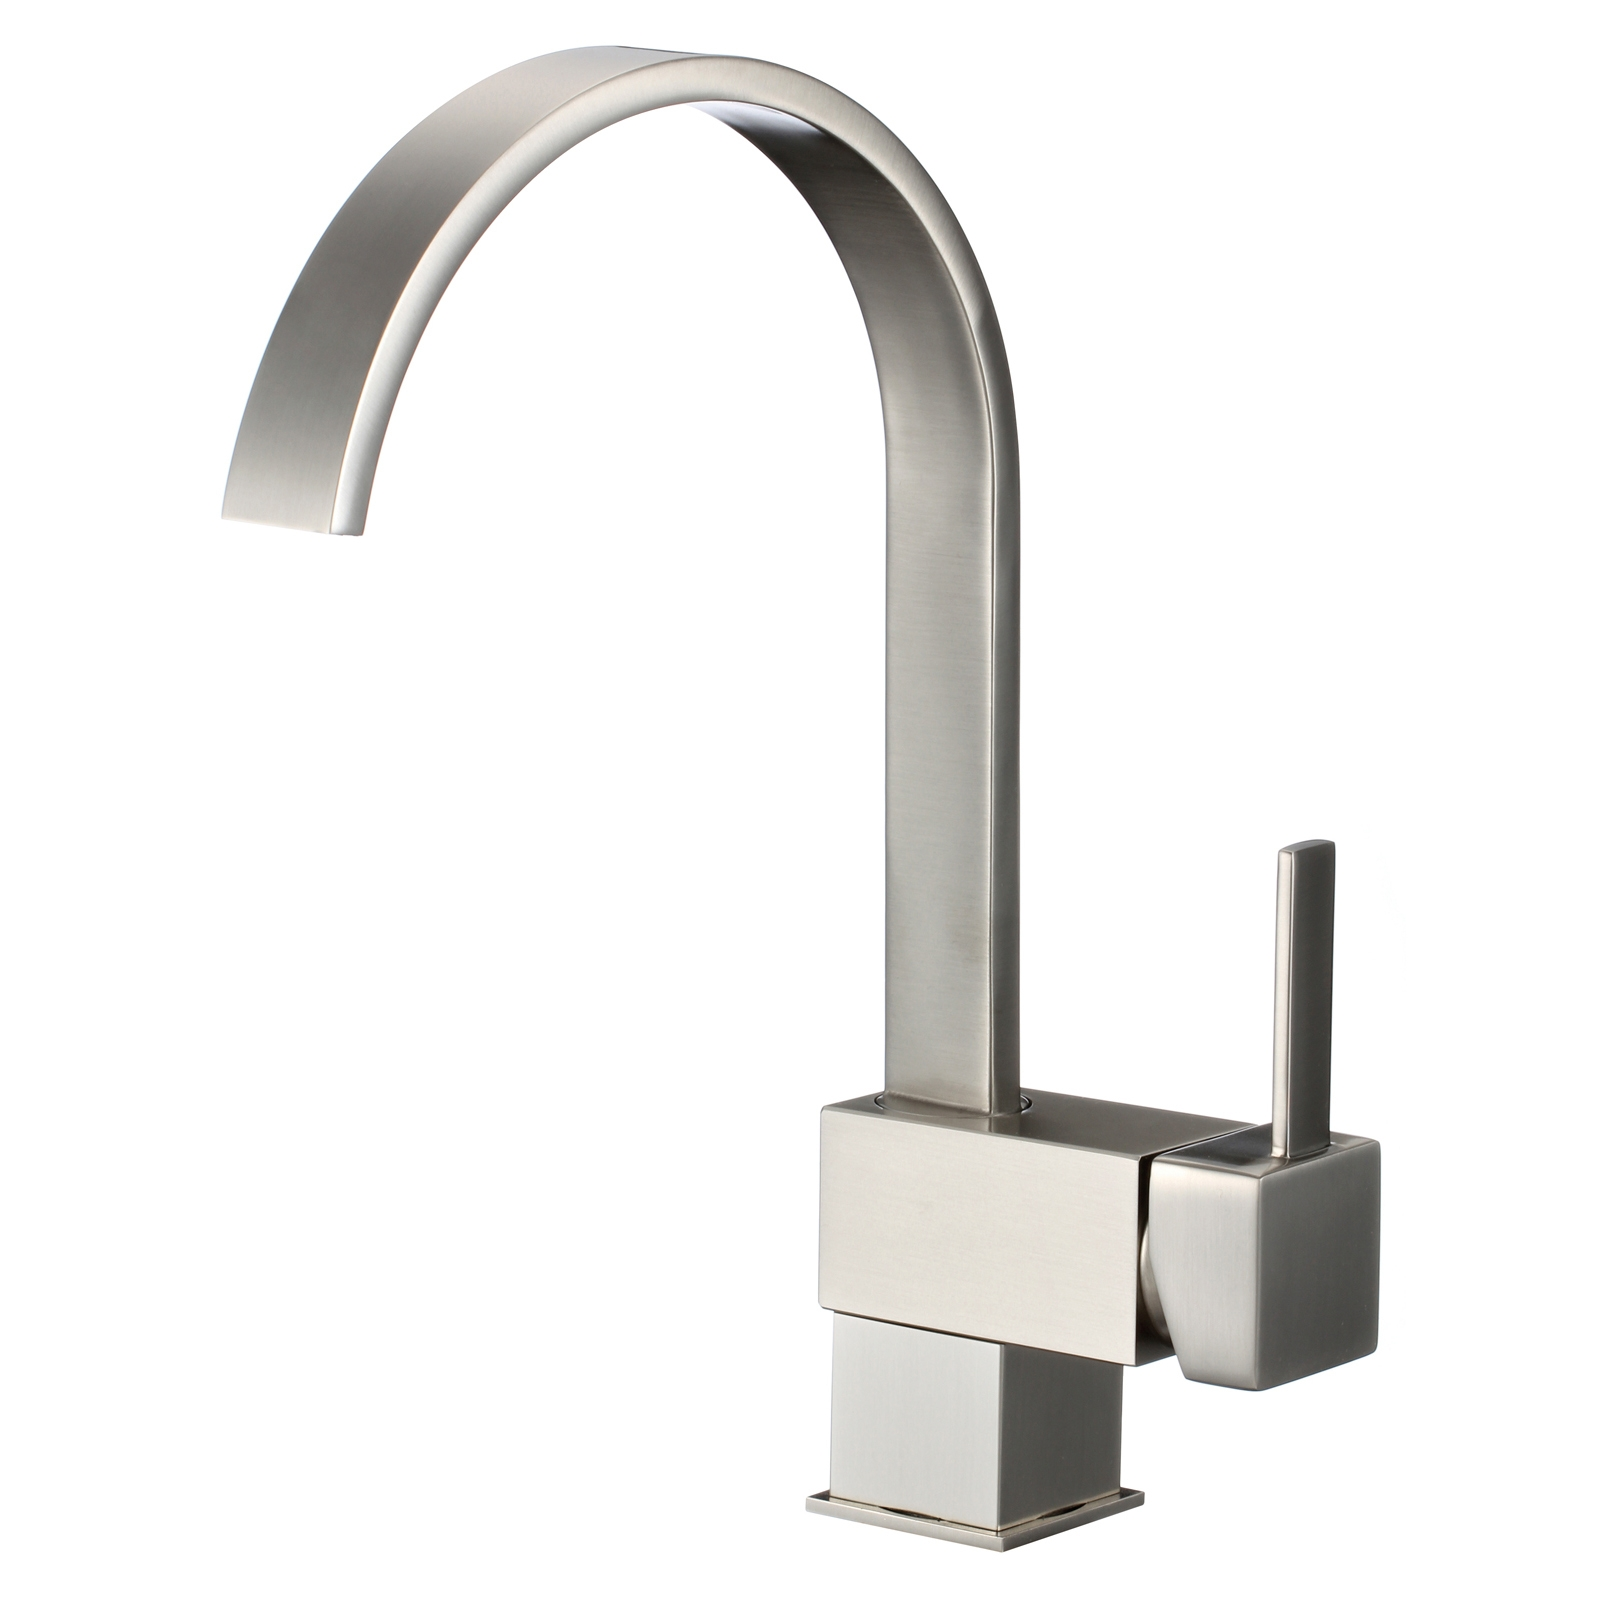 Ideas, bathroom wall mounted bathroom sink faucet gold sink faucet with sizing 1600 x 1600  .